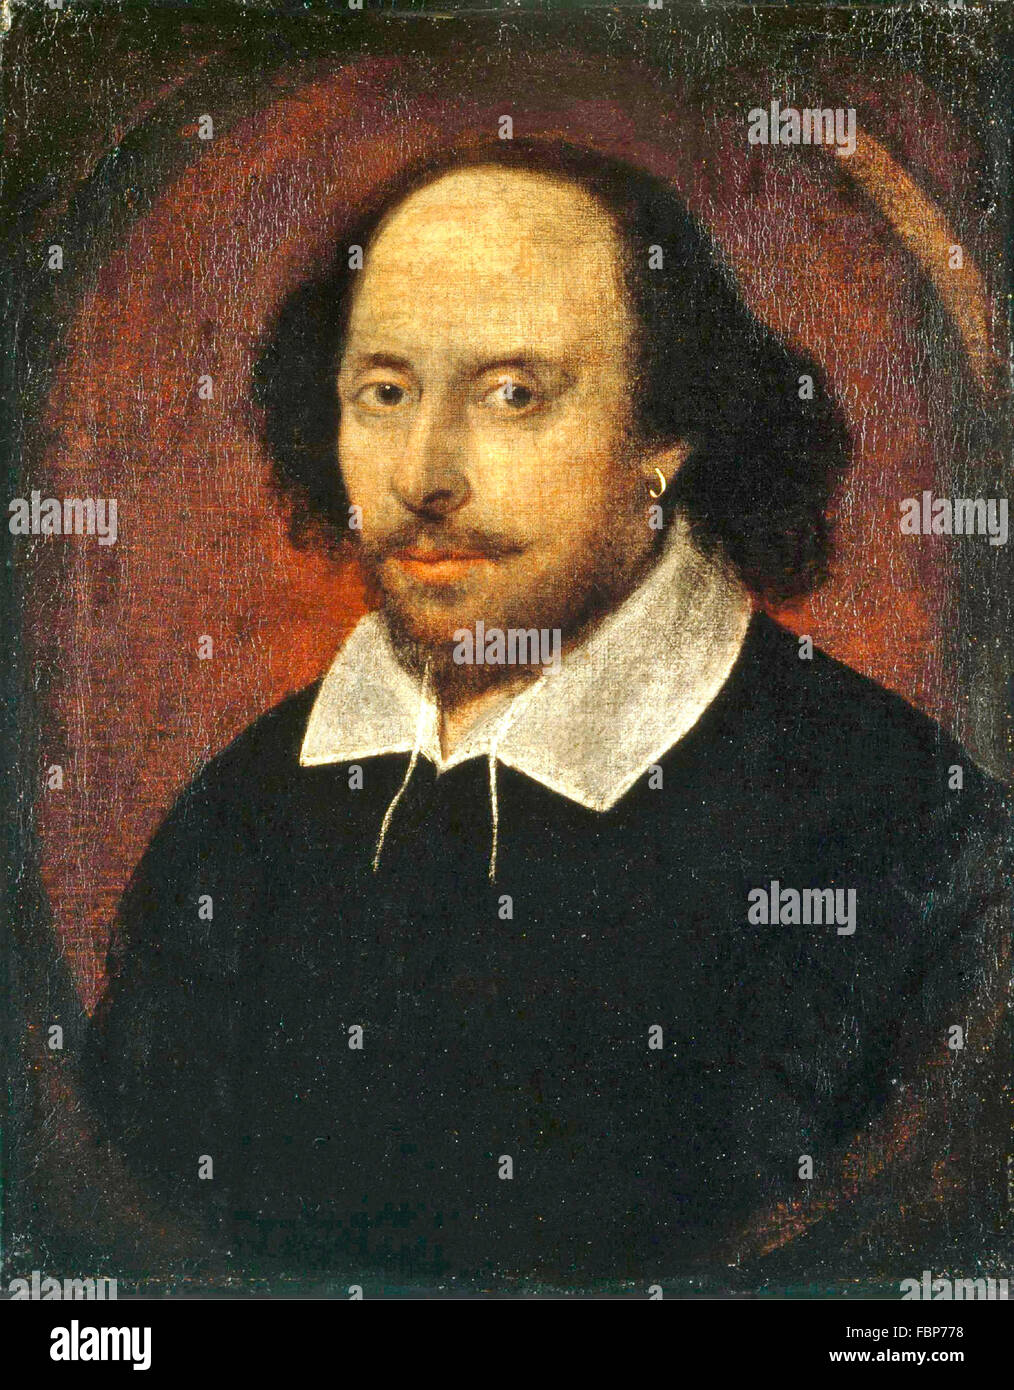 Citaten William Shakespeare : William shakespearer the quot chandos portrait of